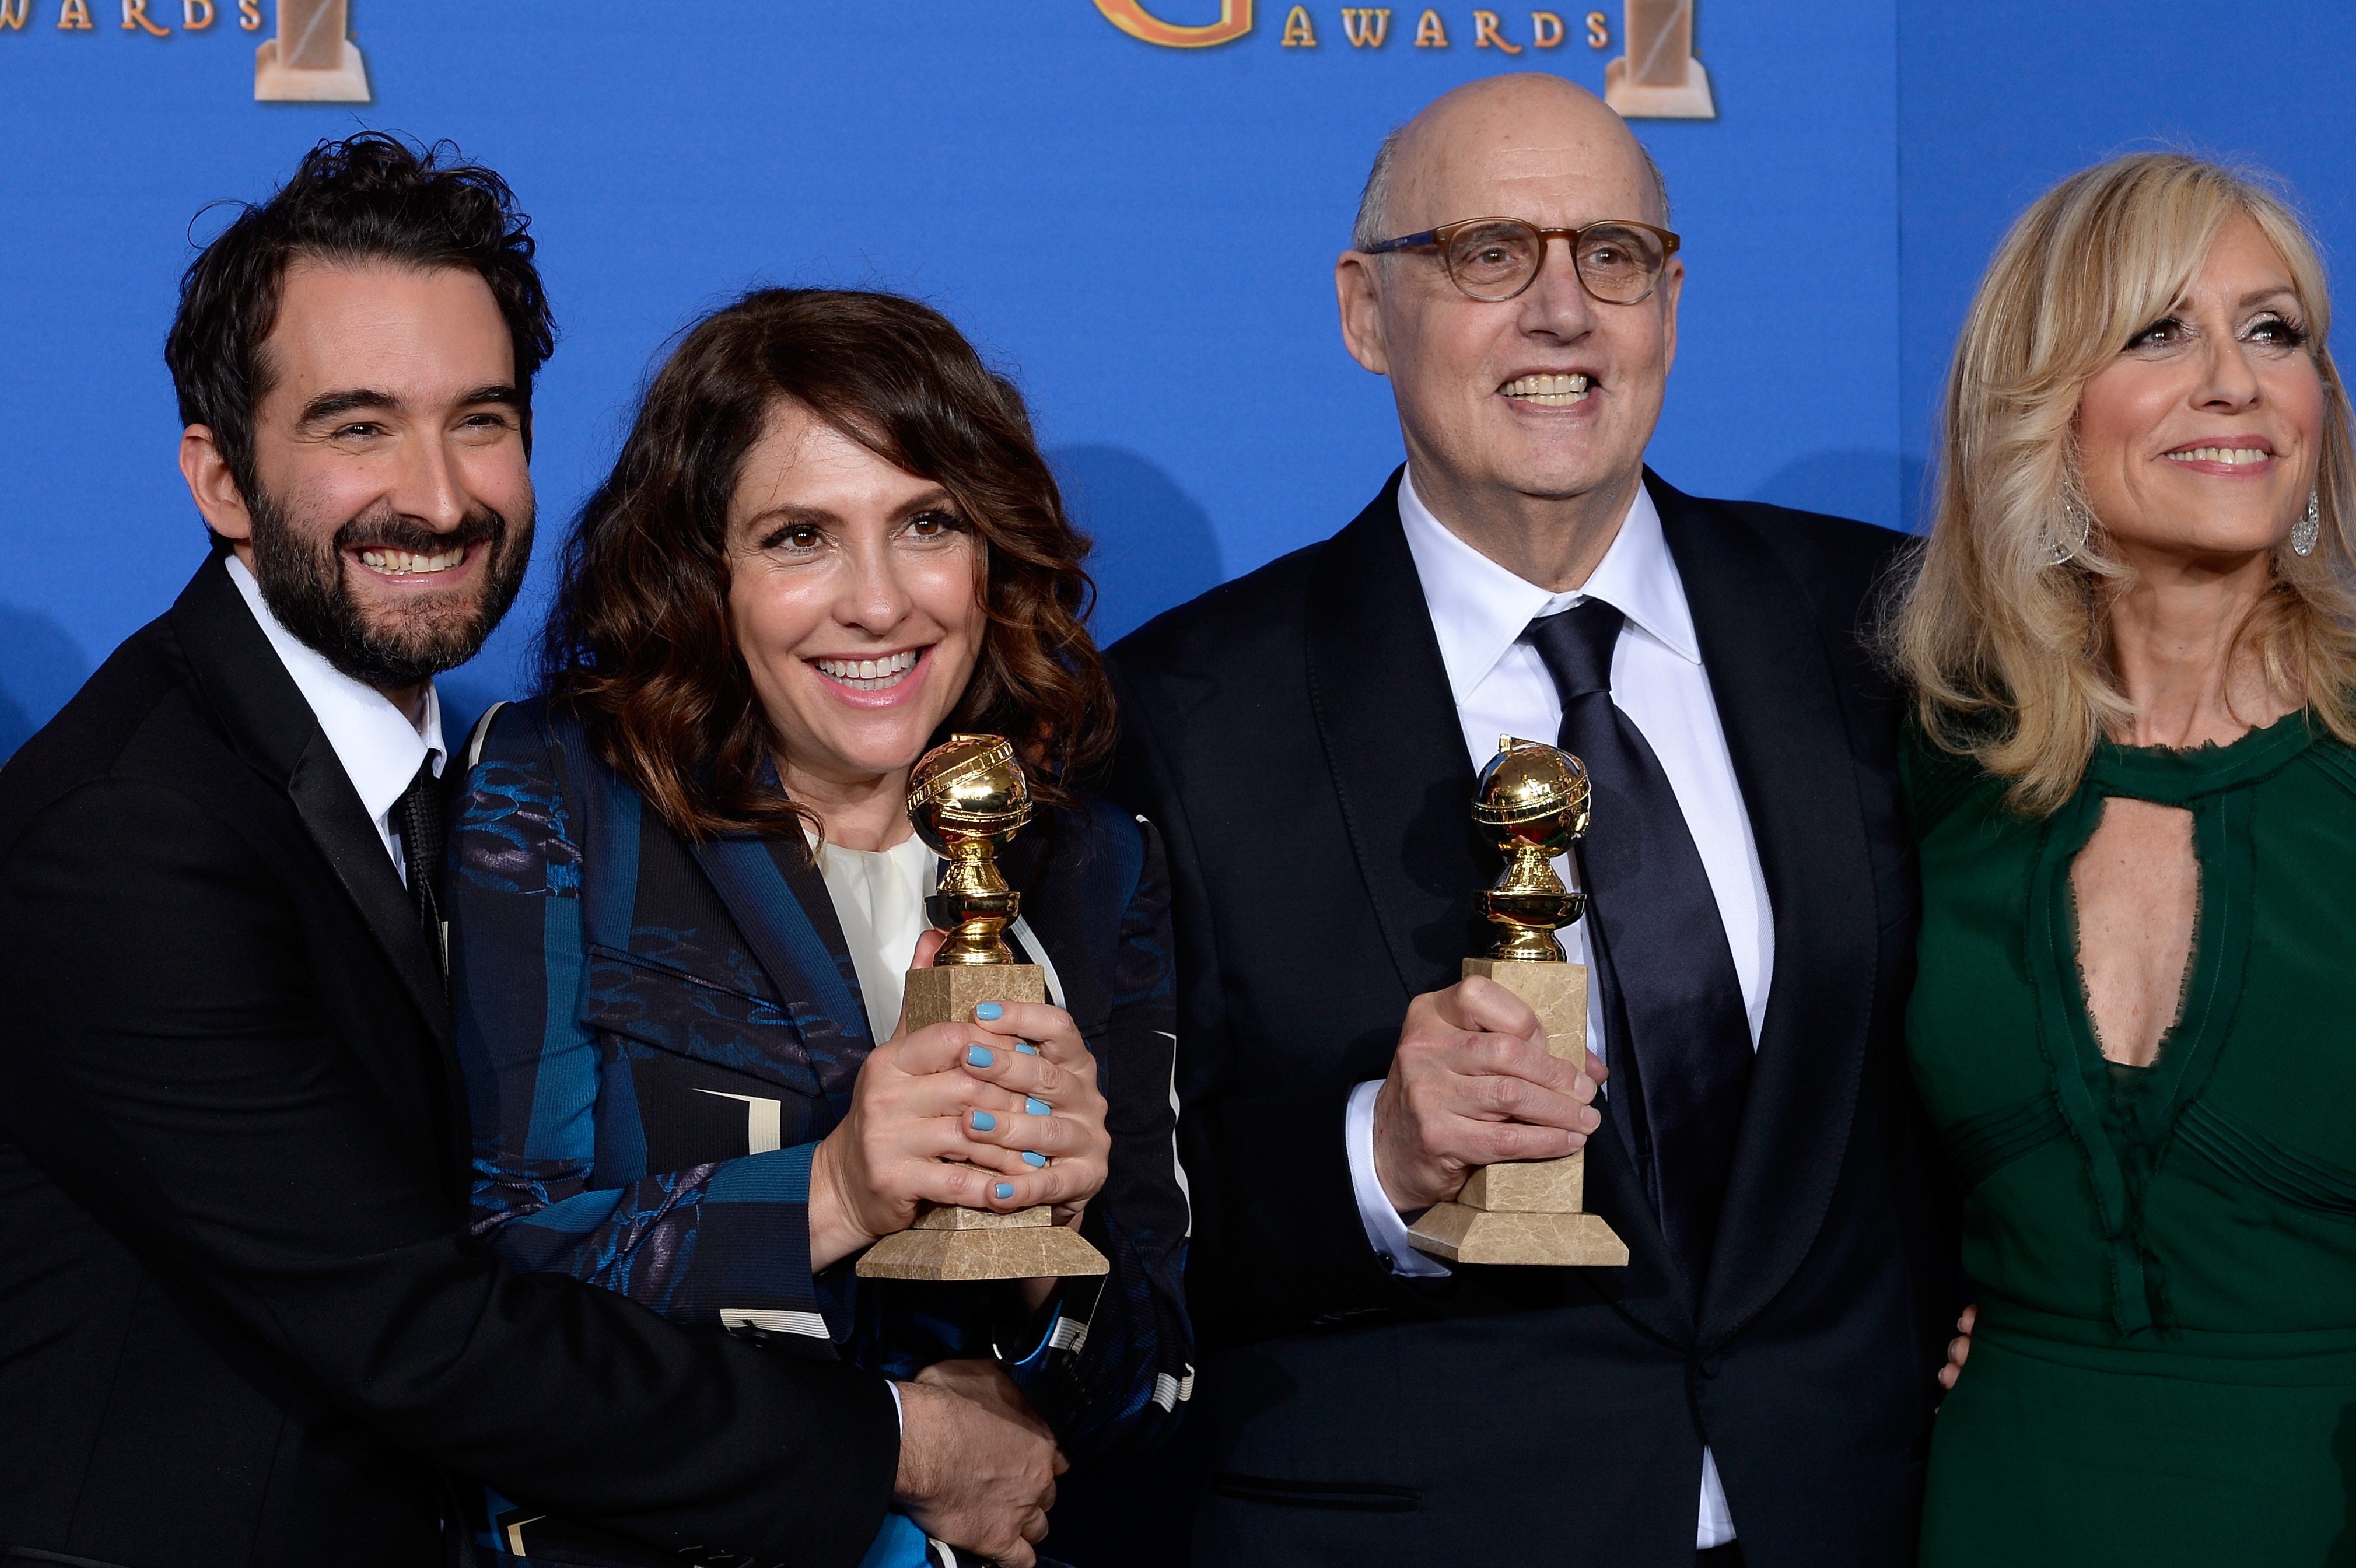 LOS ANGELES, CA - JANUARY 11: 72nd ANNUAL GOLDEN GLOBE AWARDS -- Pictured: (l-r) in the press room at the 72nd Annual Golden Globe Awards held at the Beverly Hilton Hotel on January 11, 2015. (Photo by: Kevork Djansezian/NBC/NBCU Photo Bank)